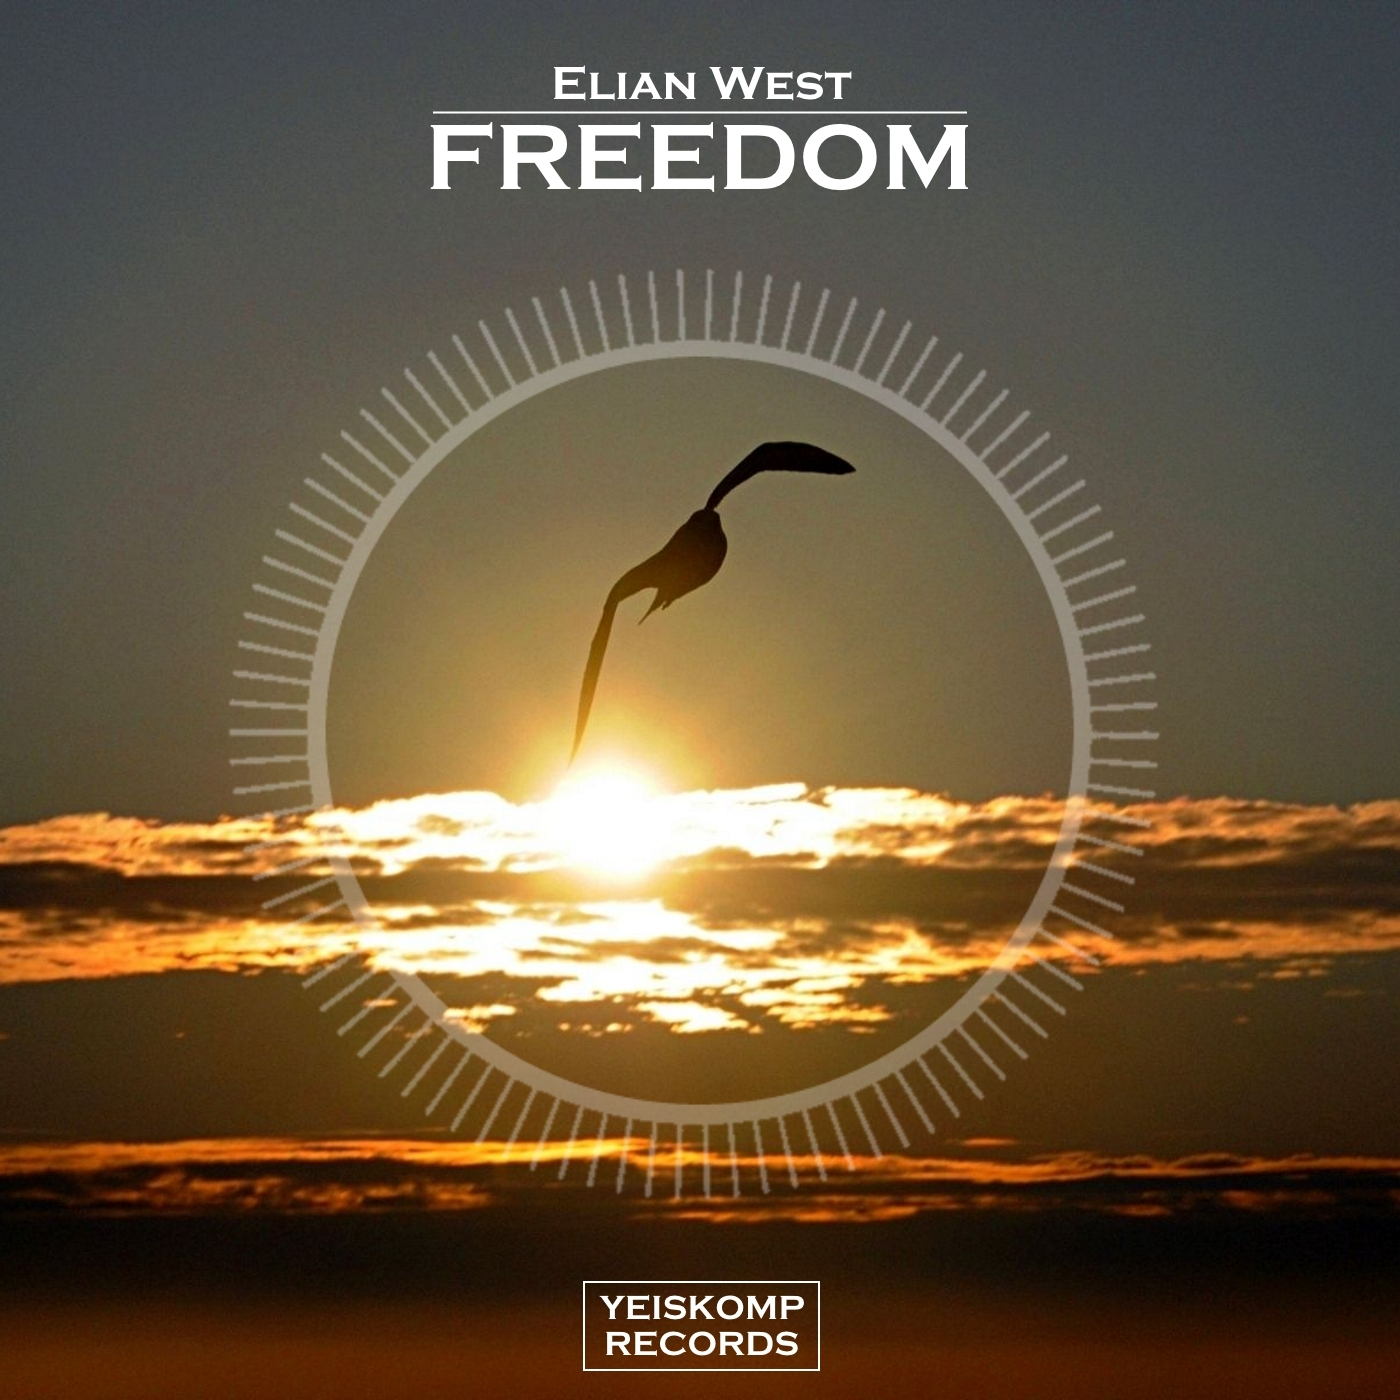 Elian West - Freedom (Extended Mix)